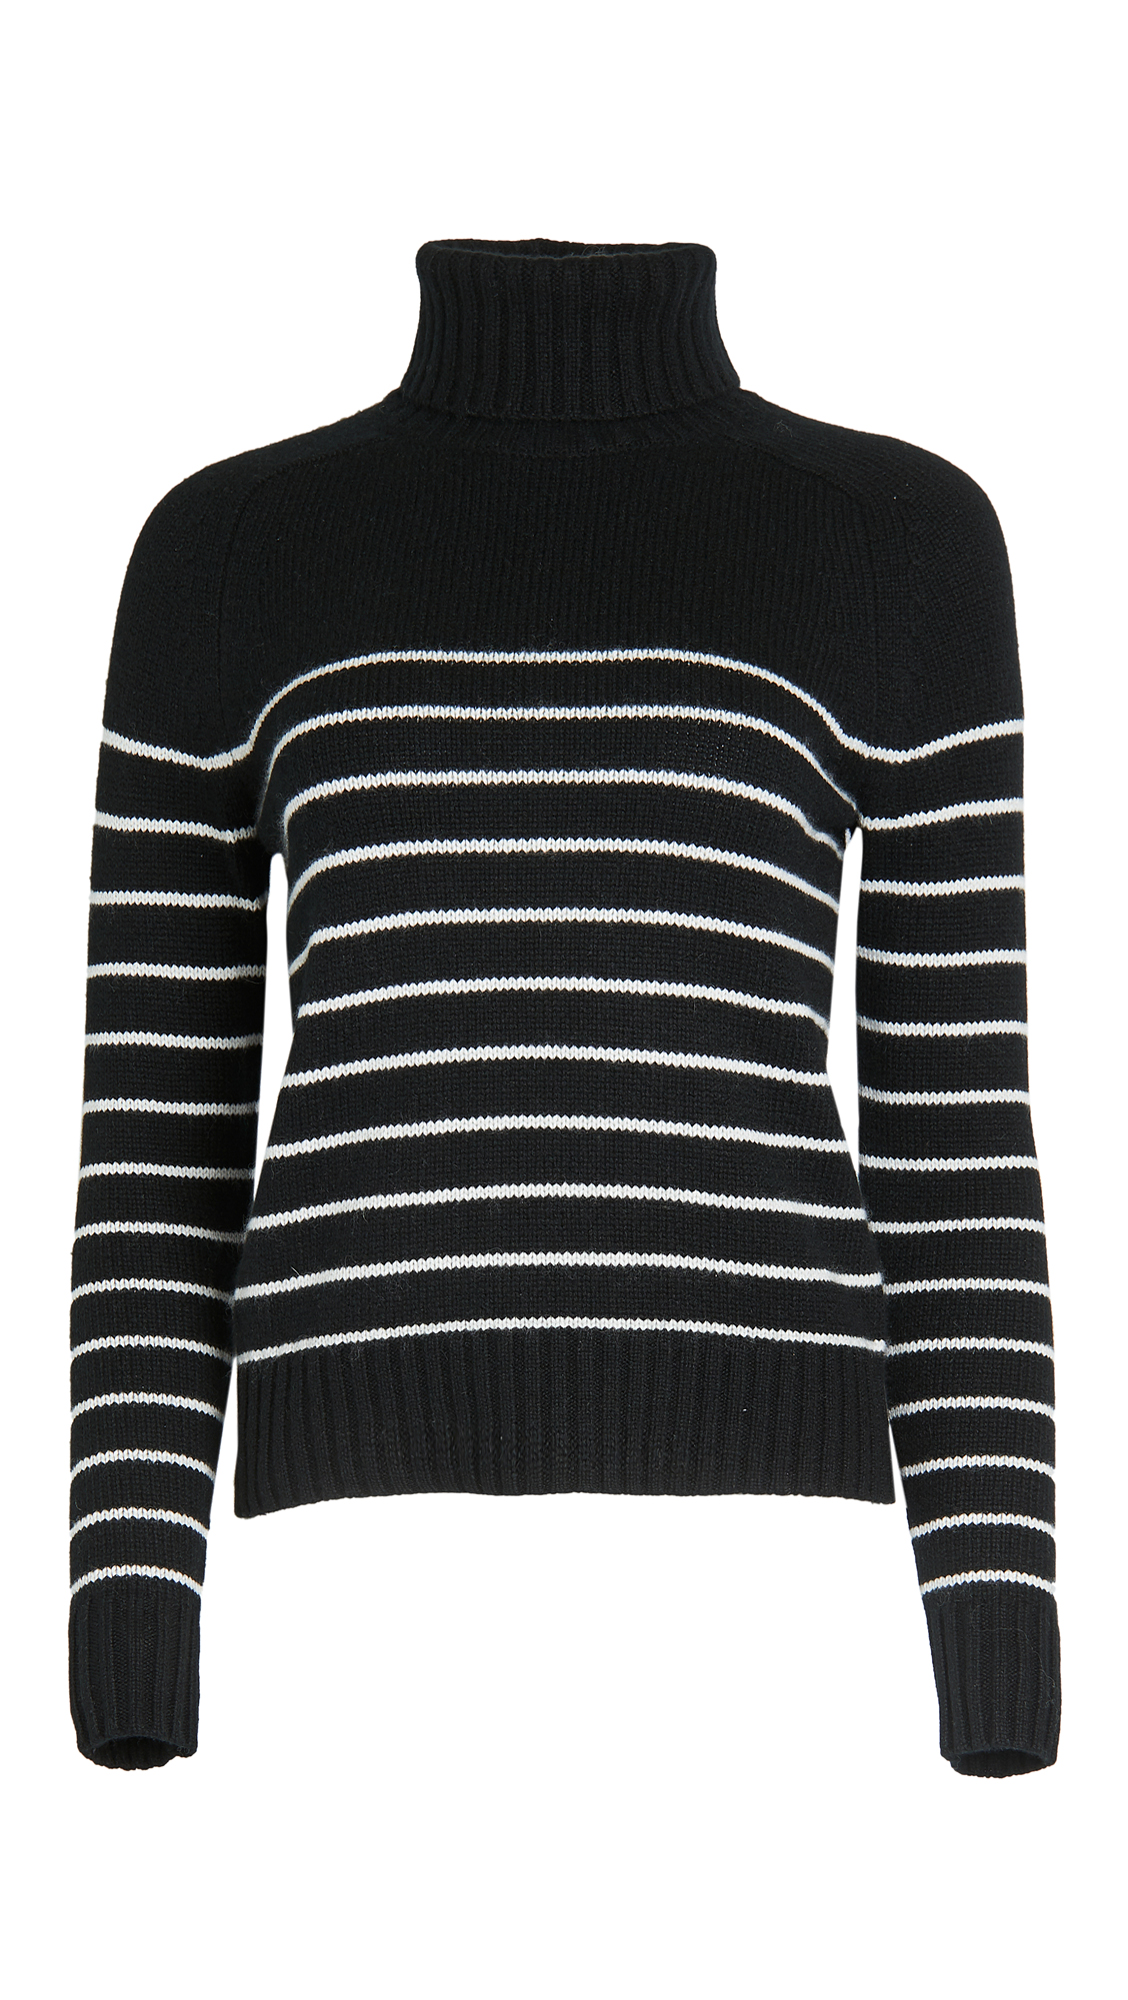 Nili Lotan Molly Striped Cashmere Turtleneck Sweater In Black